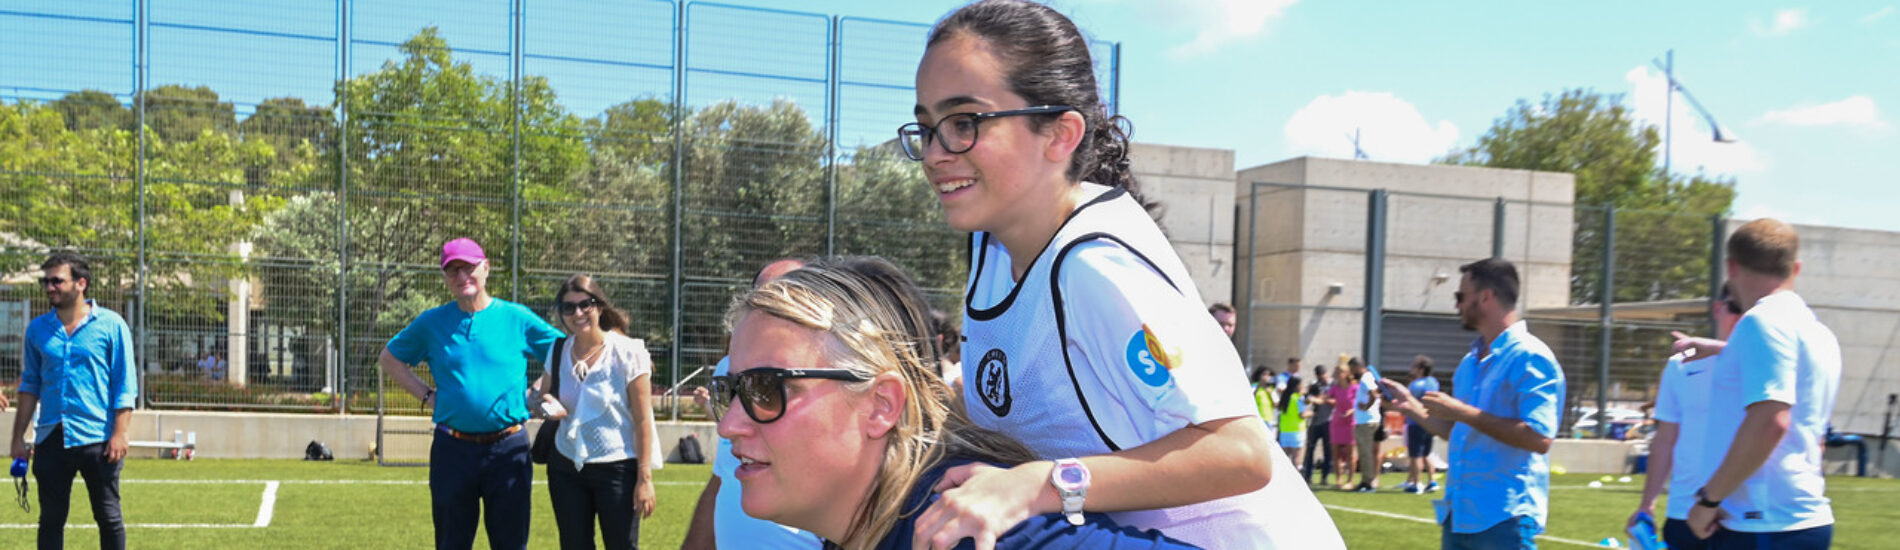 Chelsea Foundation, The Peres Center for Peace and Innovation and The Israeli Football Association team up on football programme for Jewish and Arab children